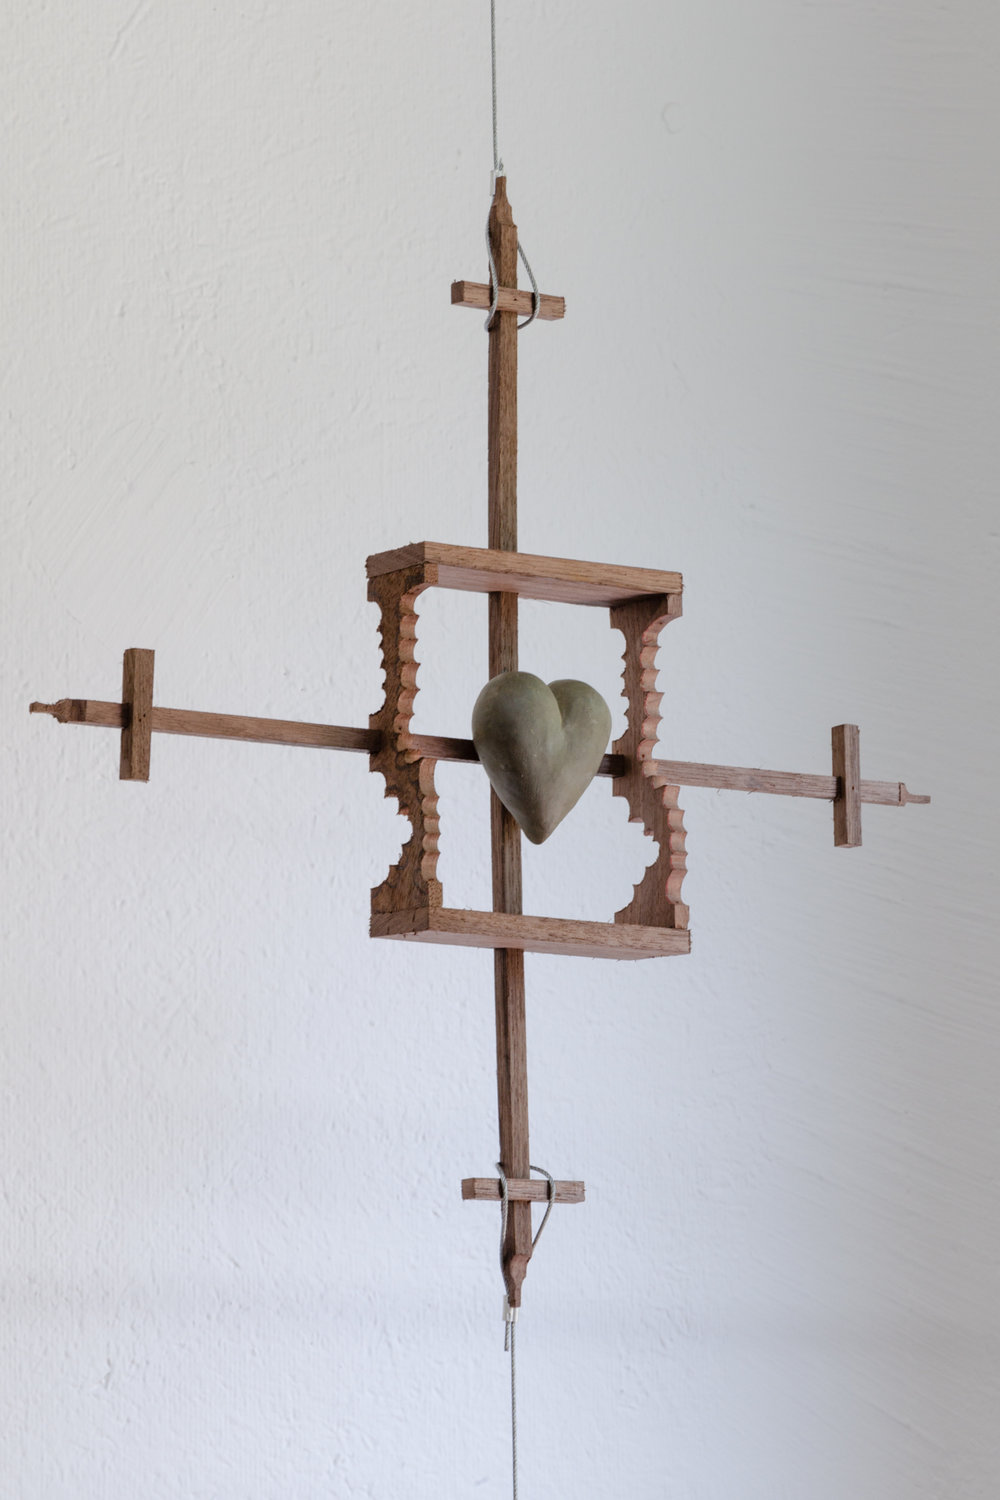 Harry Gould Harvey IV,  Radical Empathy I,  2018, Foraged Walnut from Aquidneck Island, Foraged Clay from Swans Island and Stainless Hardware, 139 x 16.5 x 2 inches